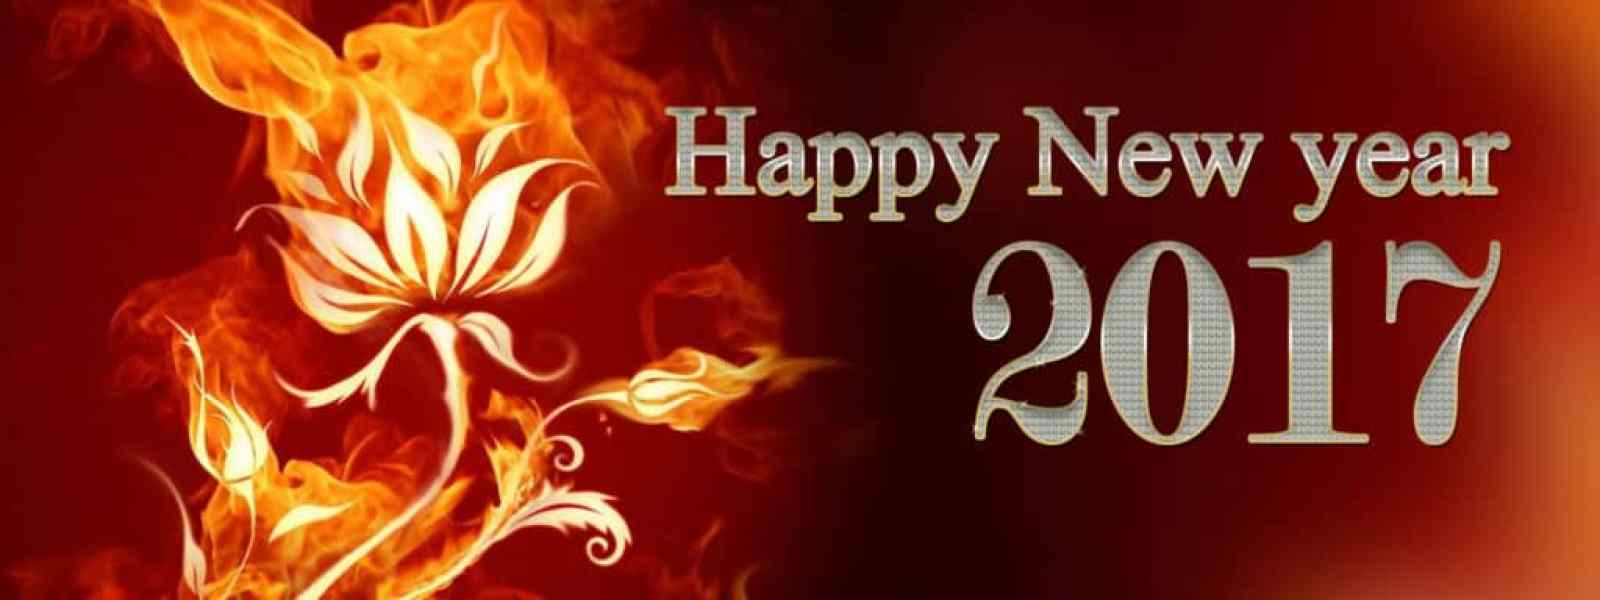 Happy New Year 2017 with fire background